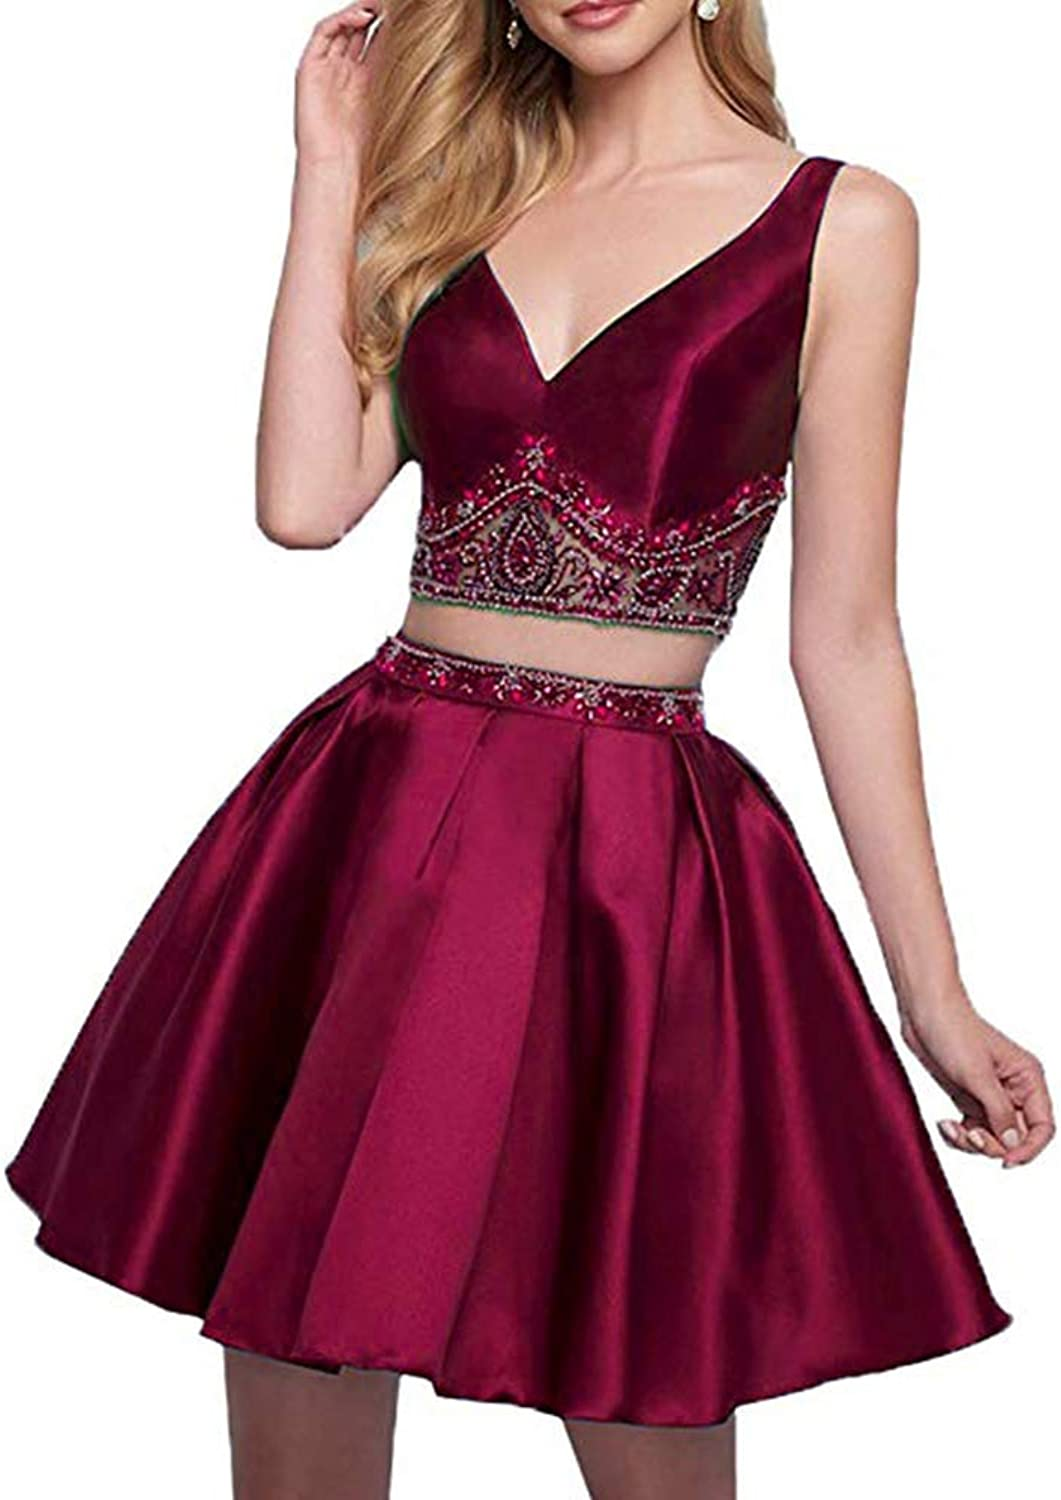 HerDress Women's Two Piece Beaded Homecoming Dresses 2018 Short Satin ALine VNeck Prom Dresses Cocktail Ball Gowns